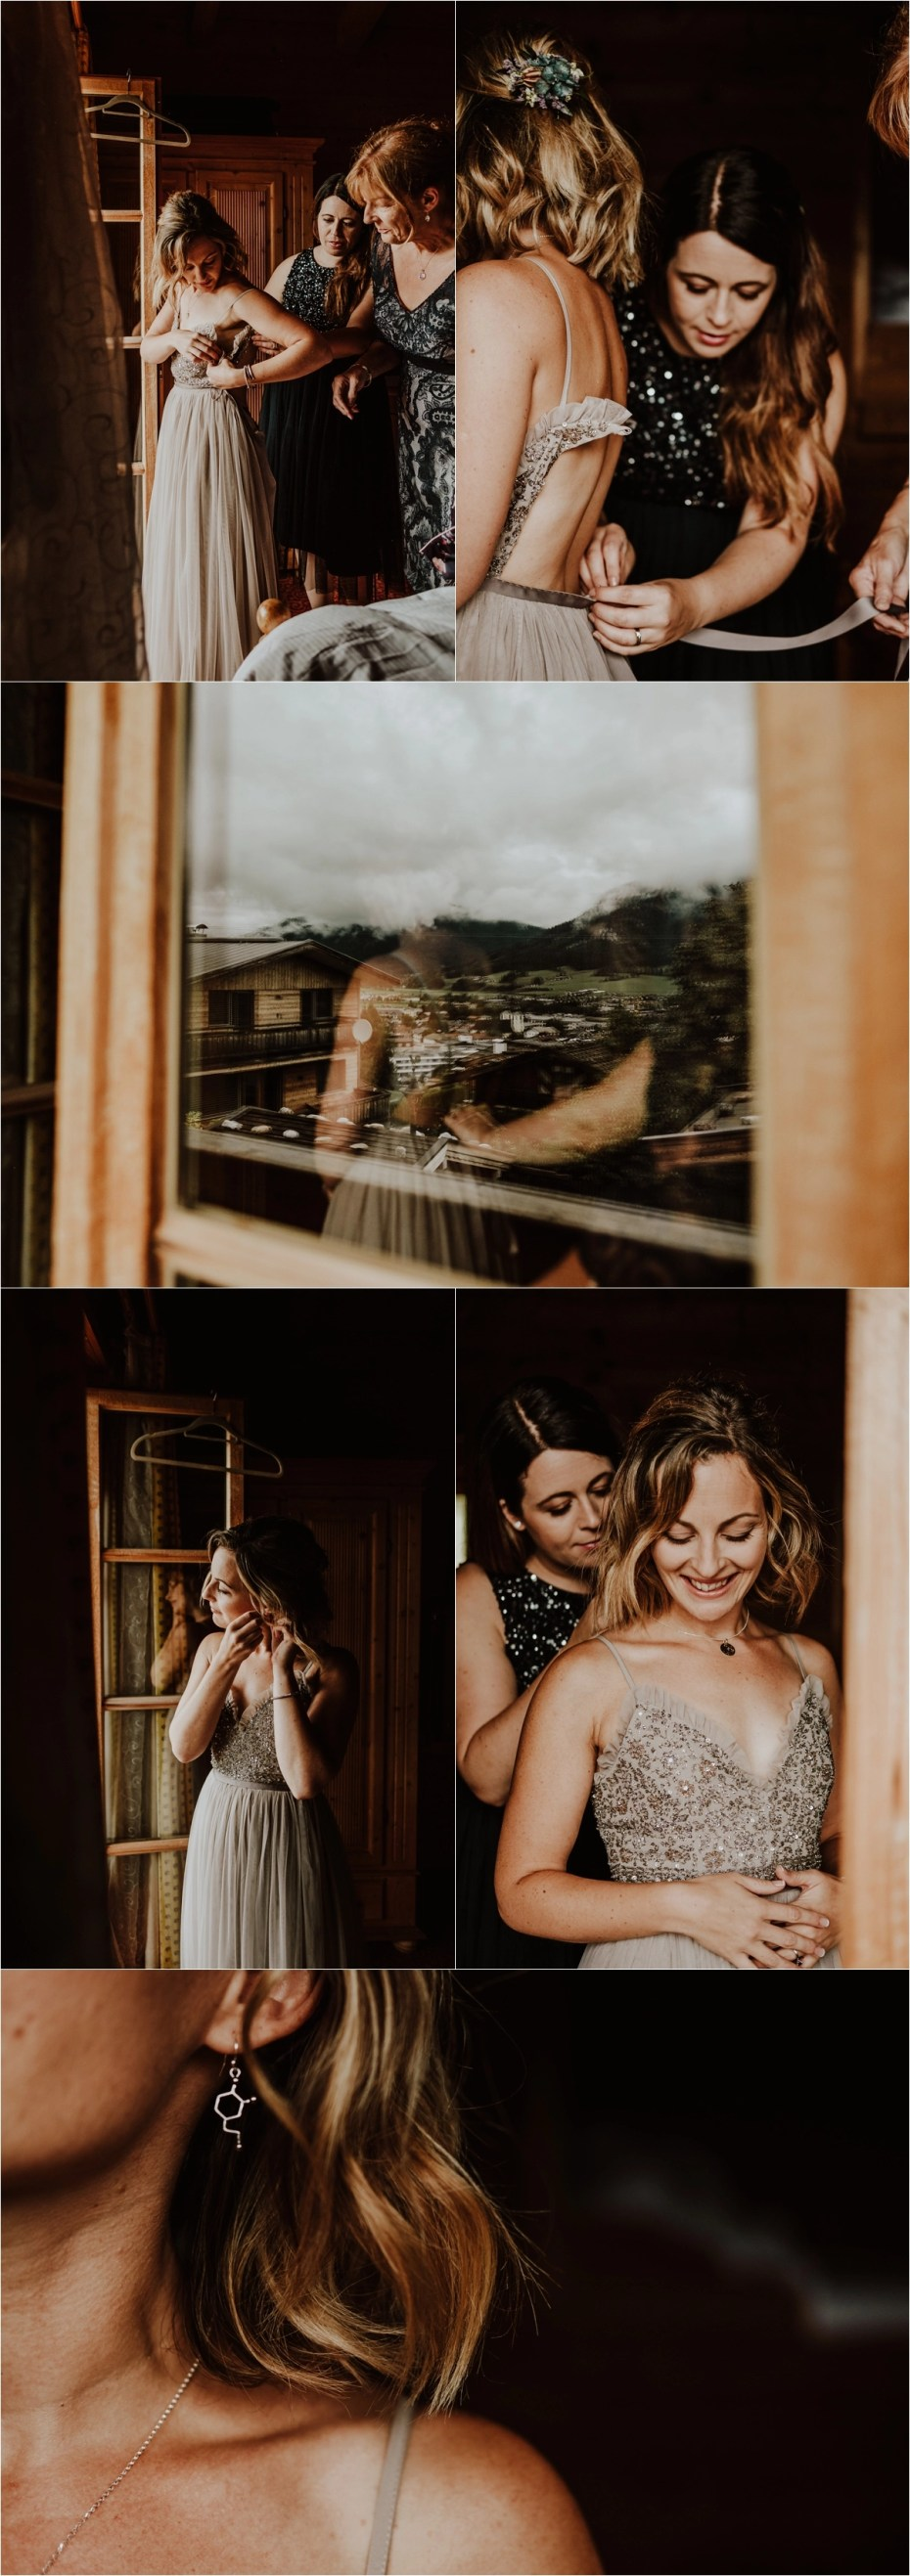 The bride gets dressed in her Needle & Thread wedding dress for her mountain wedding in Austria by Wild Connections Photography